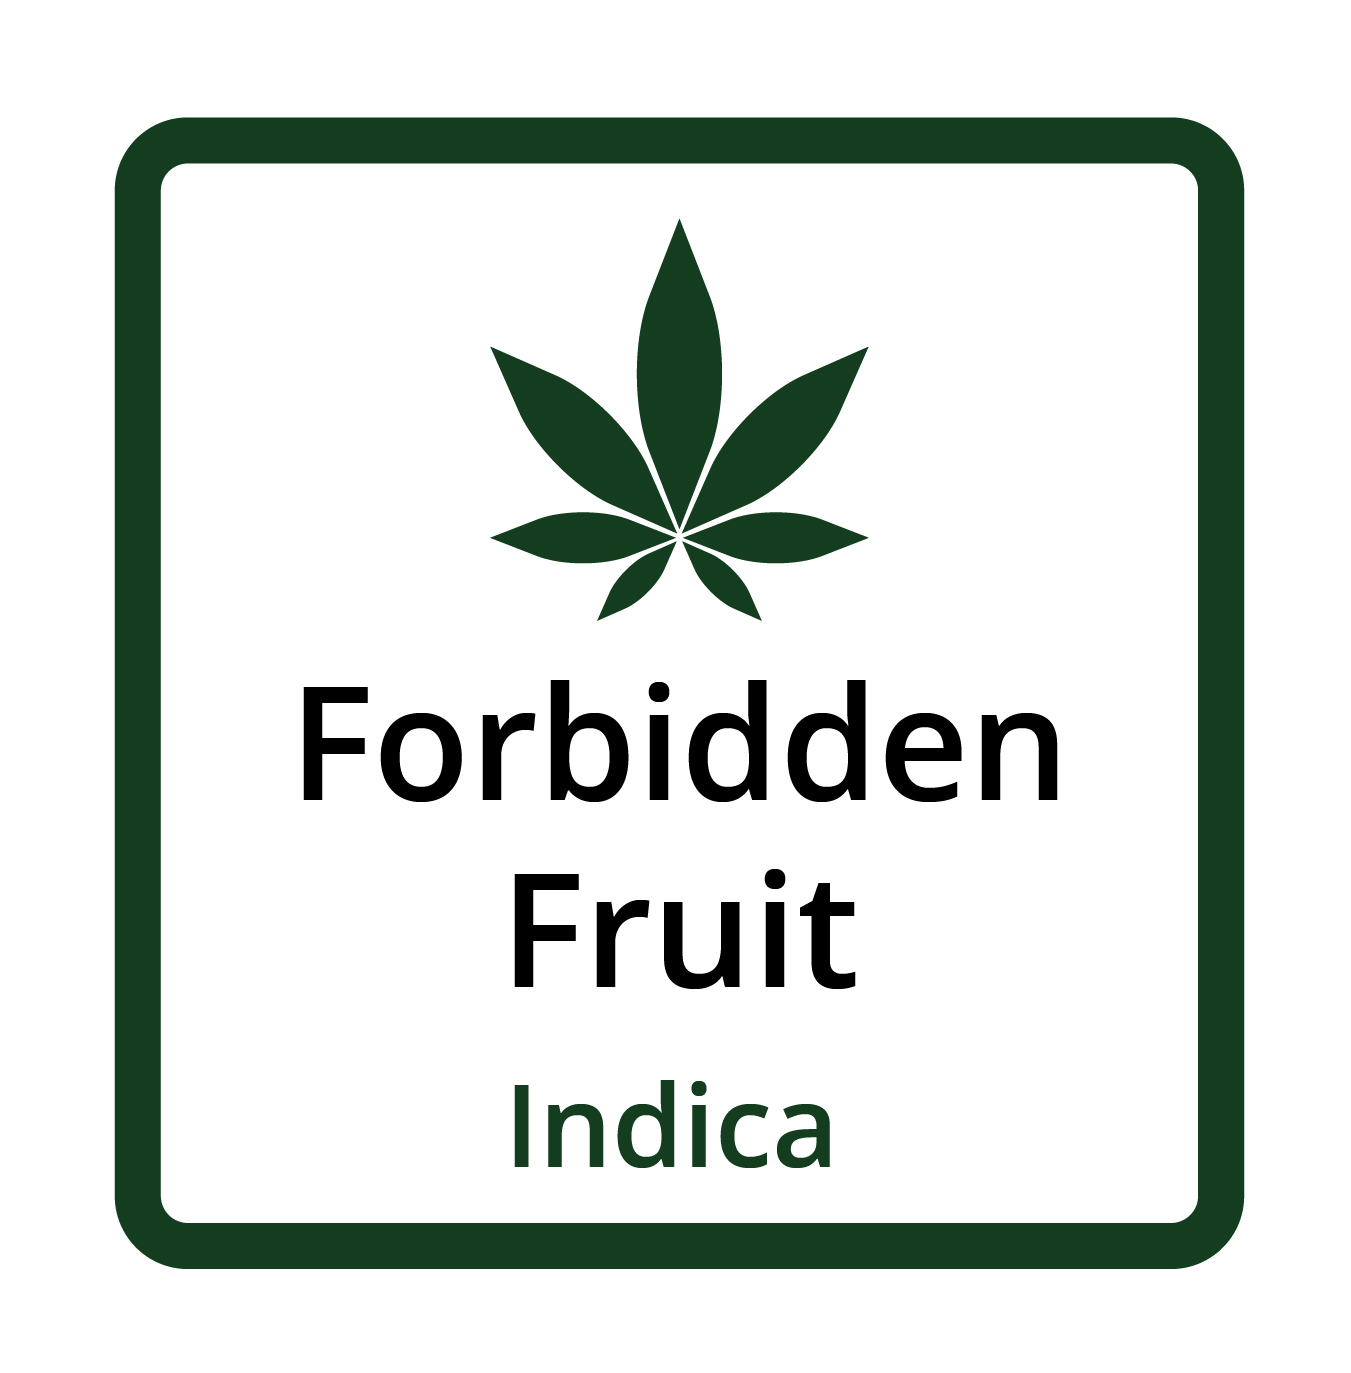 Forbidden Fruit (Indica)